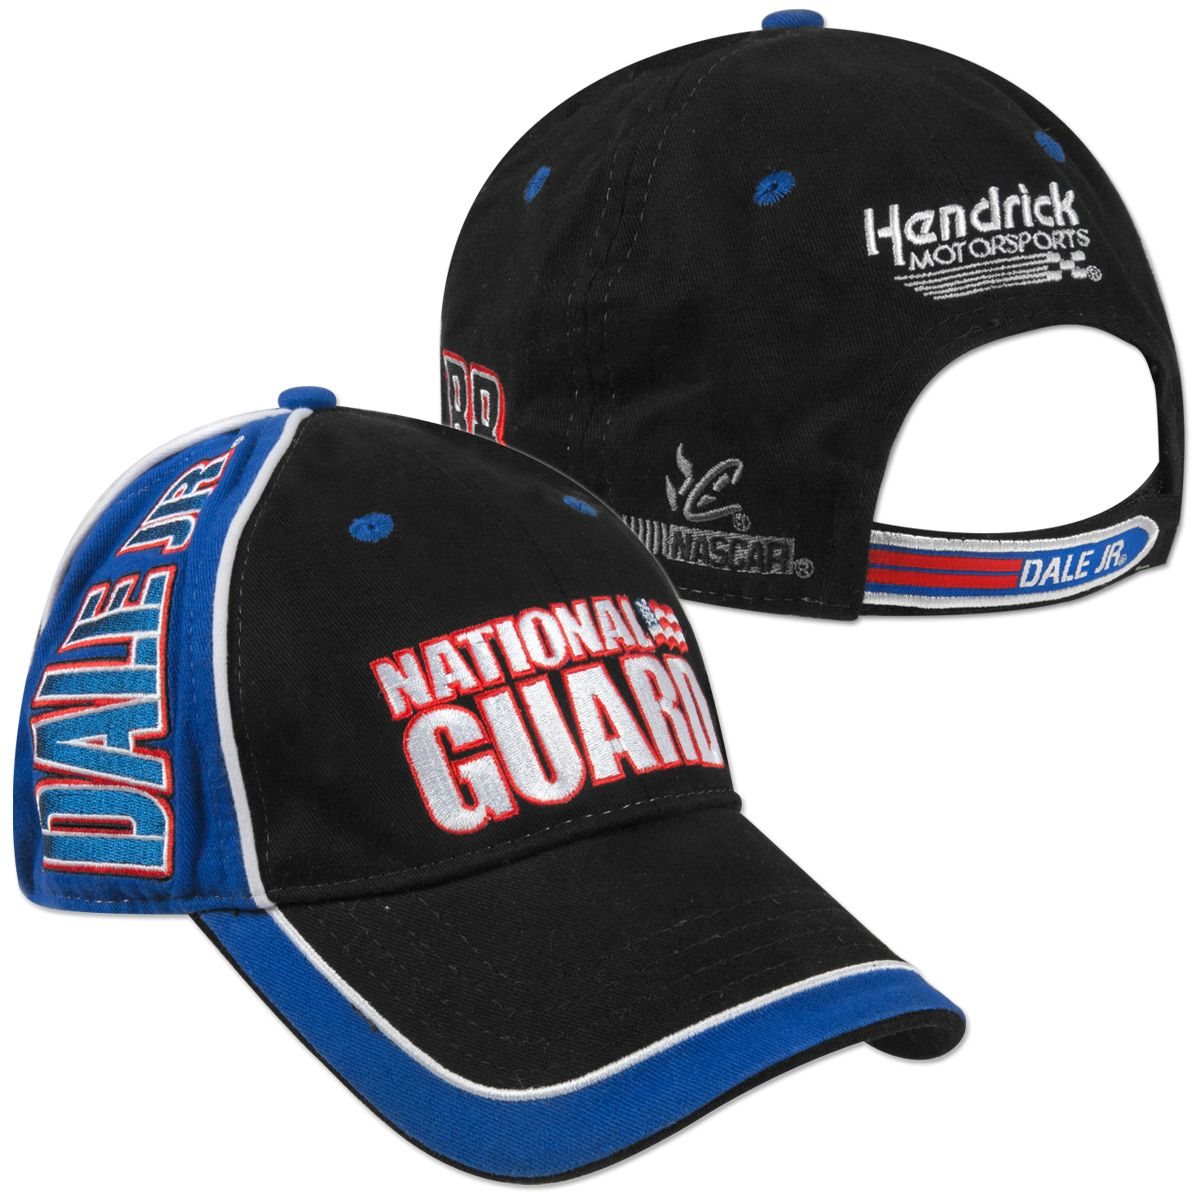 Deal of the Week (March 15-21, 2012)! Purchase the Dale Jr. Colorblock Cap for just $10 while supplies last at the Hendrick Motorsports Team Store: http://store.hendrickmotorsports.com/Product.aspx?cp=51101_51234_51245=8ECH371. Use coupon code HMSFB11 at checkout.